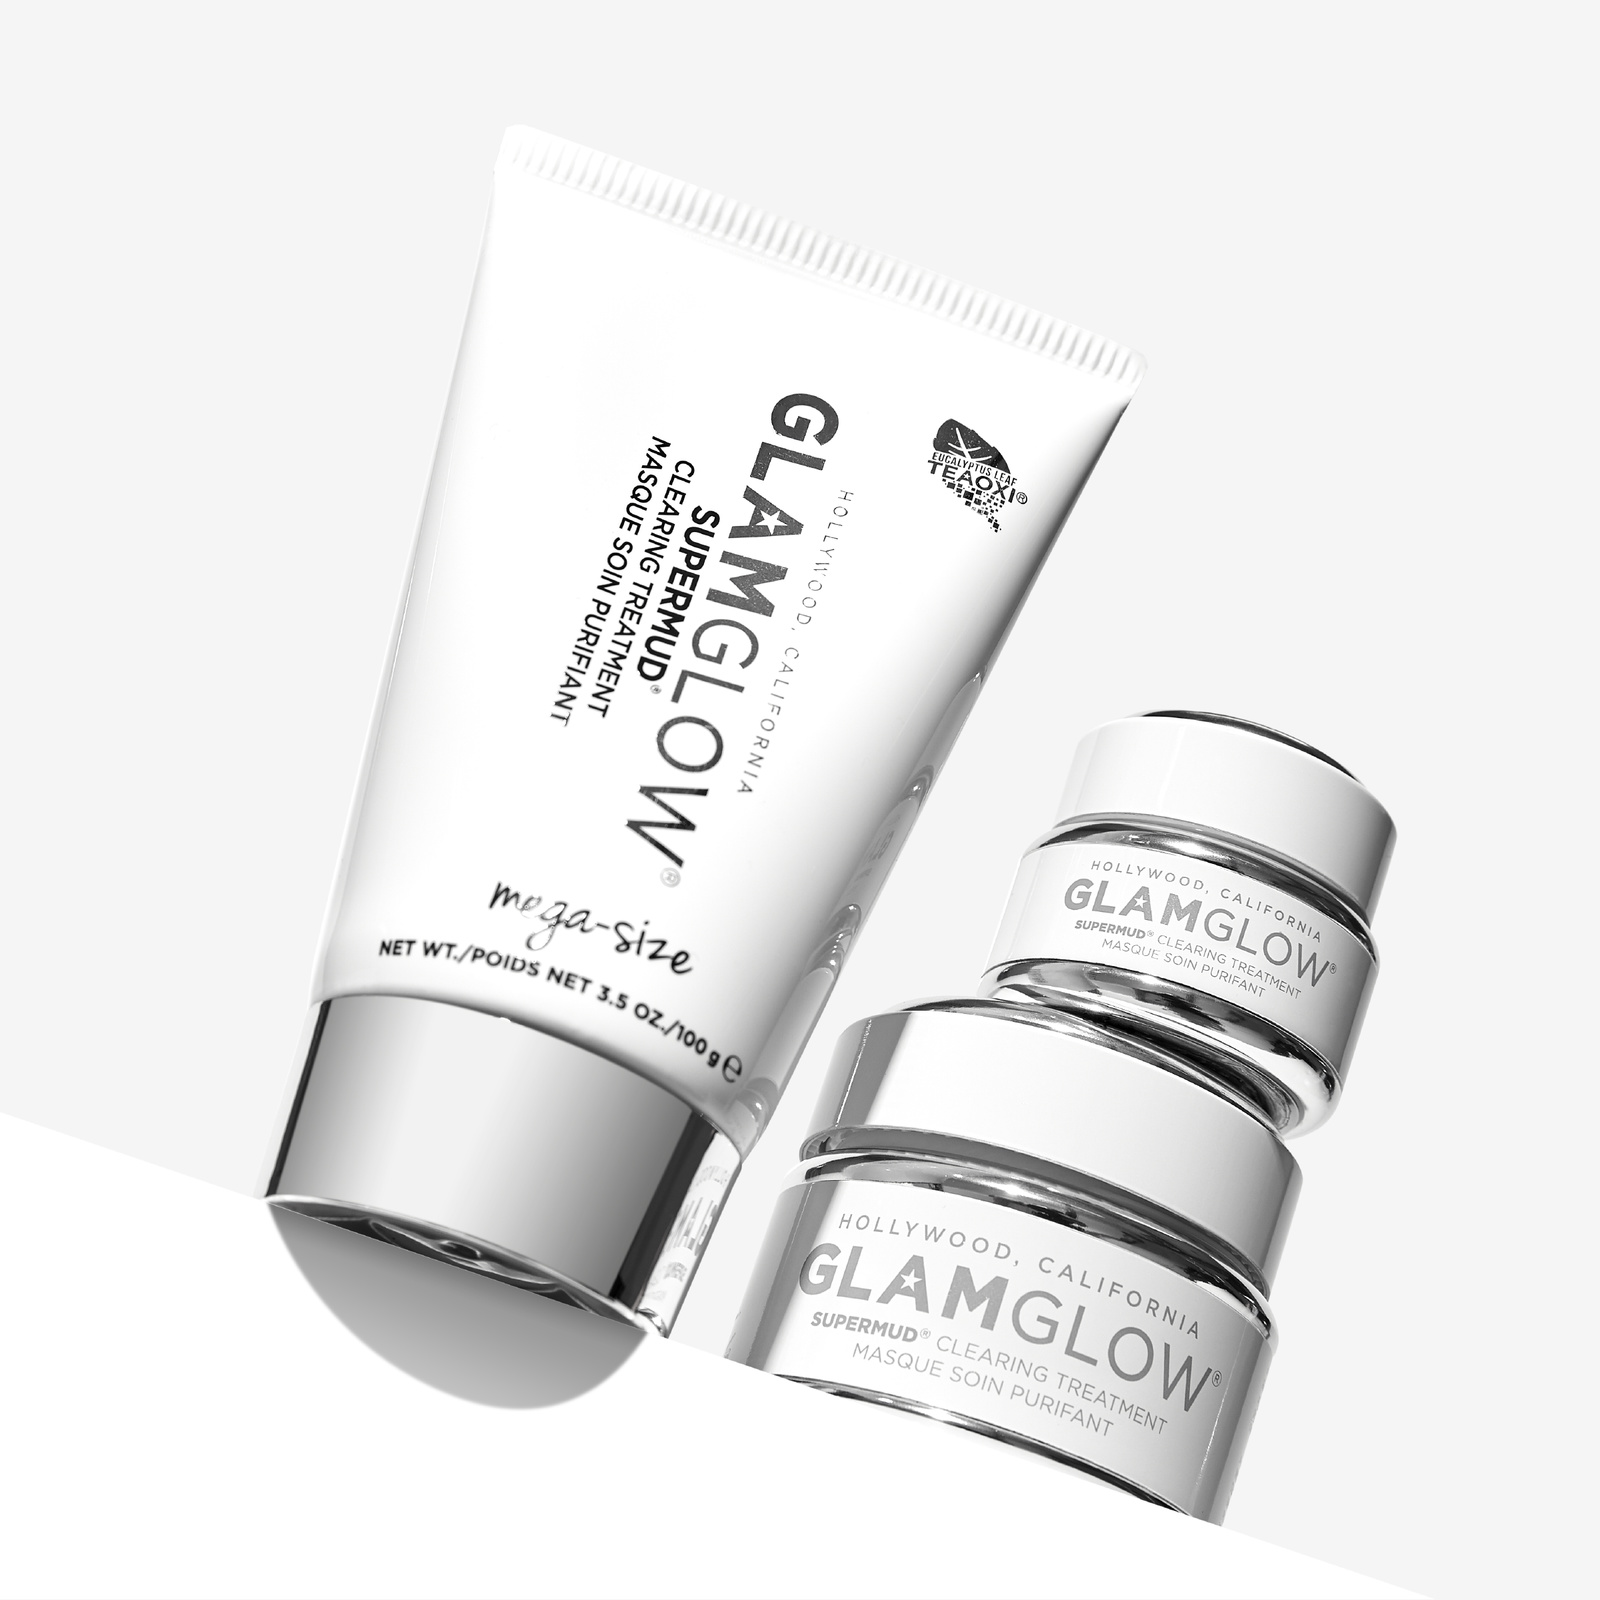 GET GLOWING WITH GLAMGLOW    BECAUSE IT'S NEVER BEEN SO CLEAR HOW TO GET SO CLEAN.